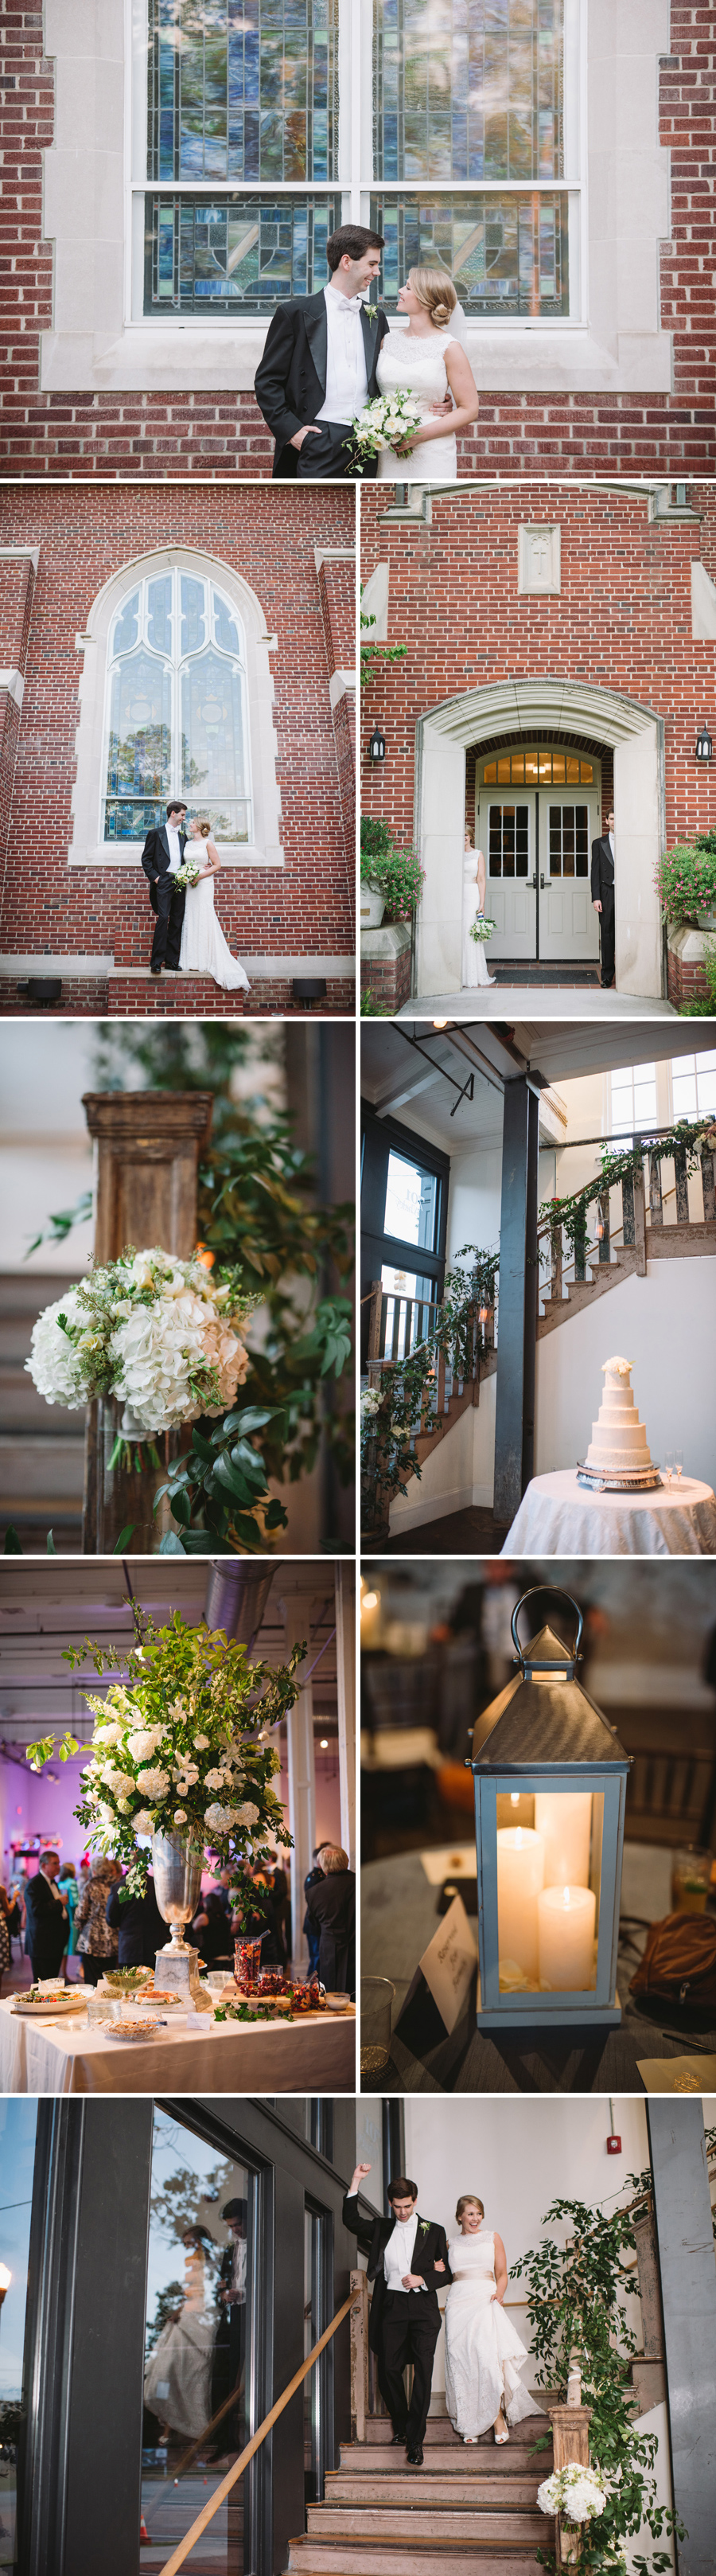 meagan-hampton-wedding-701-whaley